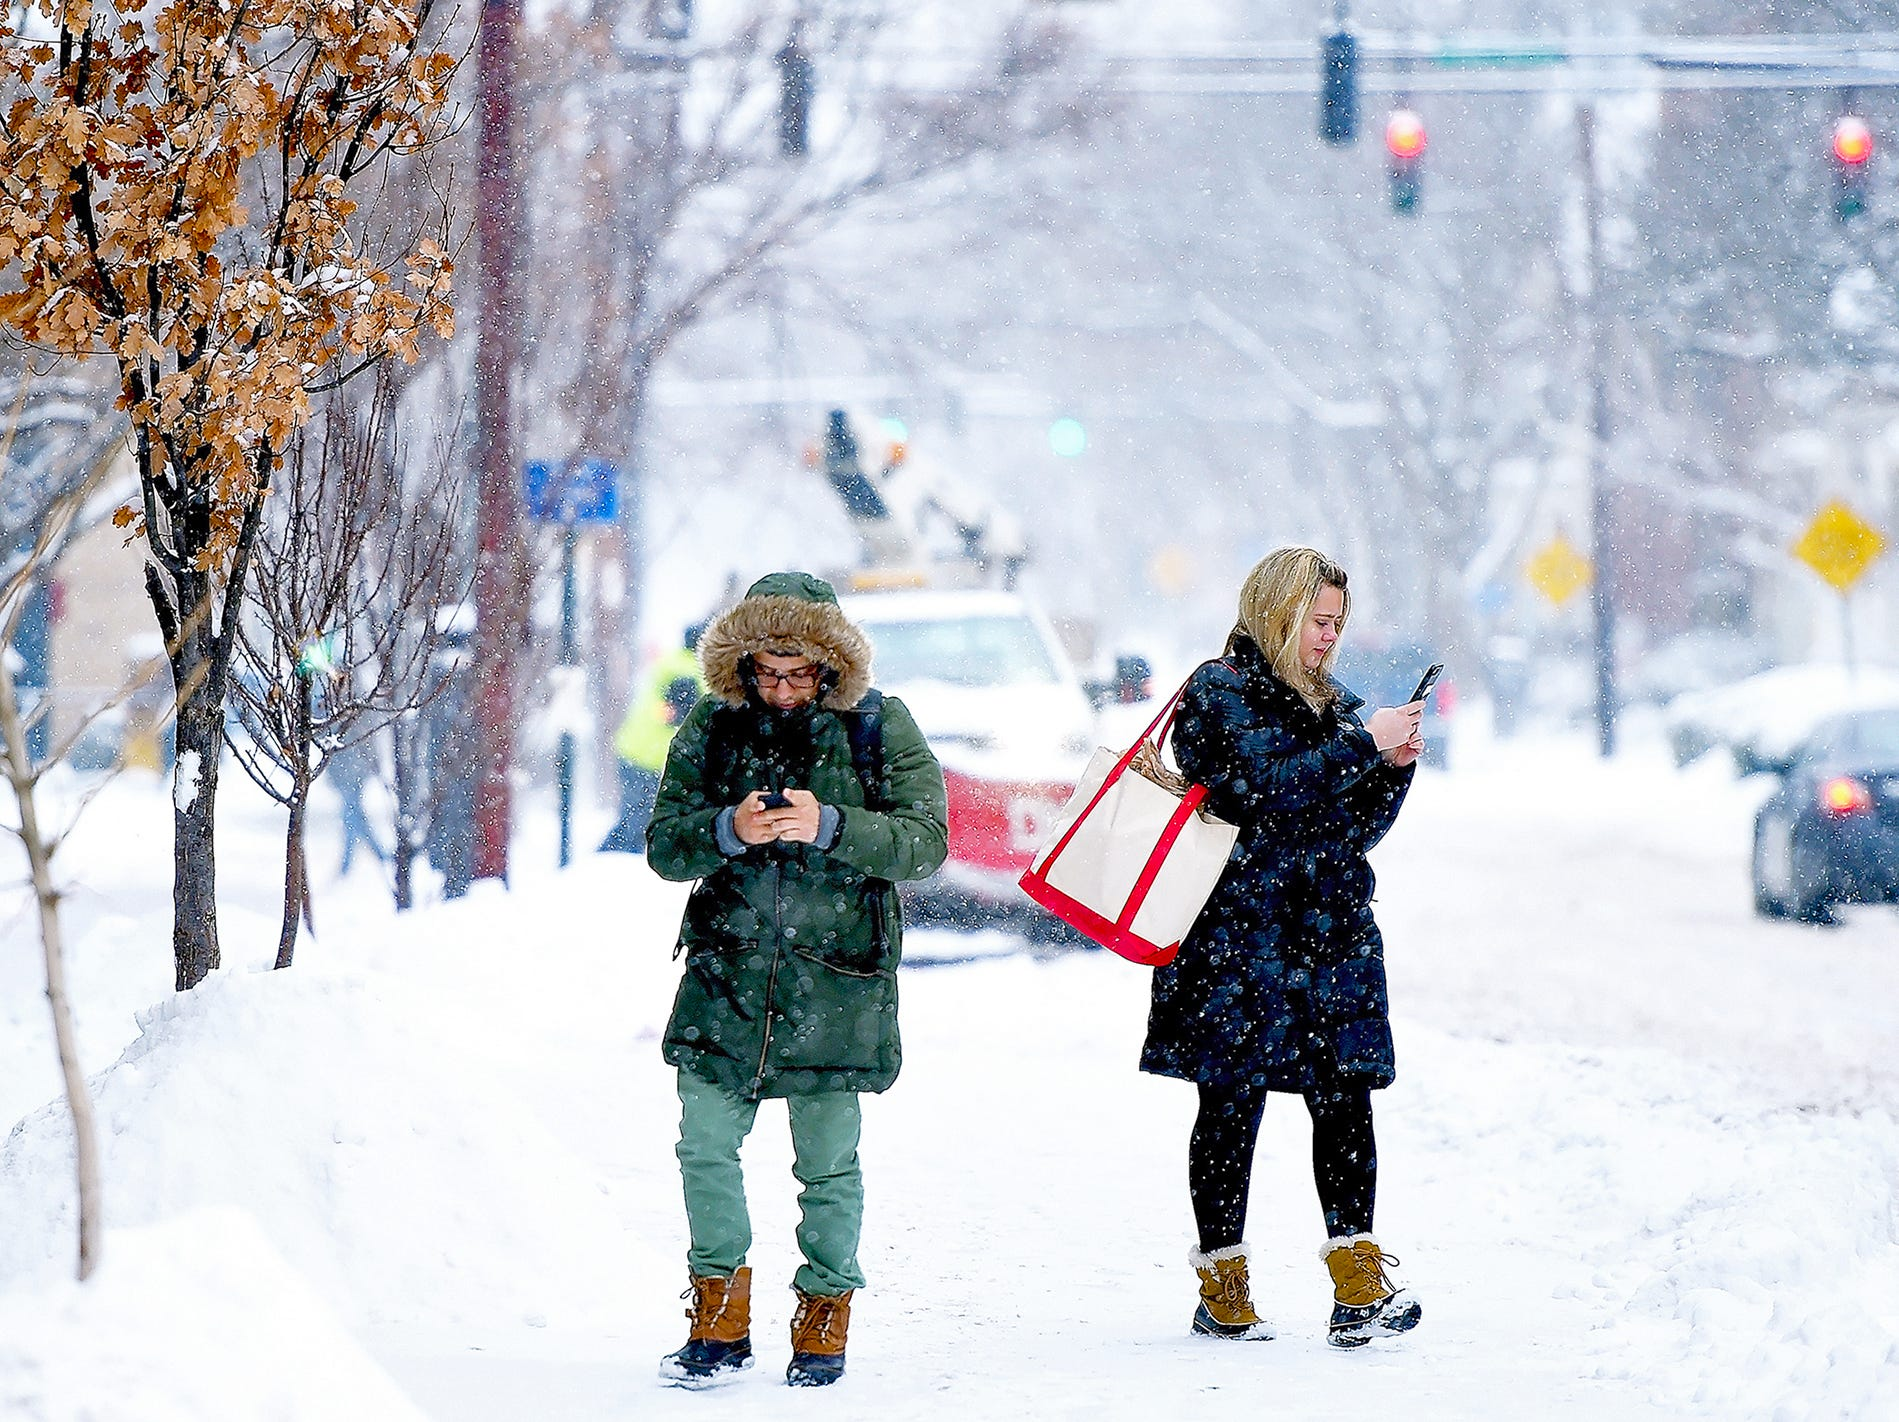 Pedestrians walk through snowy Ithaca Commons on February 7, 2018.